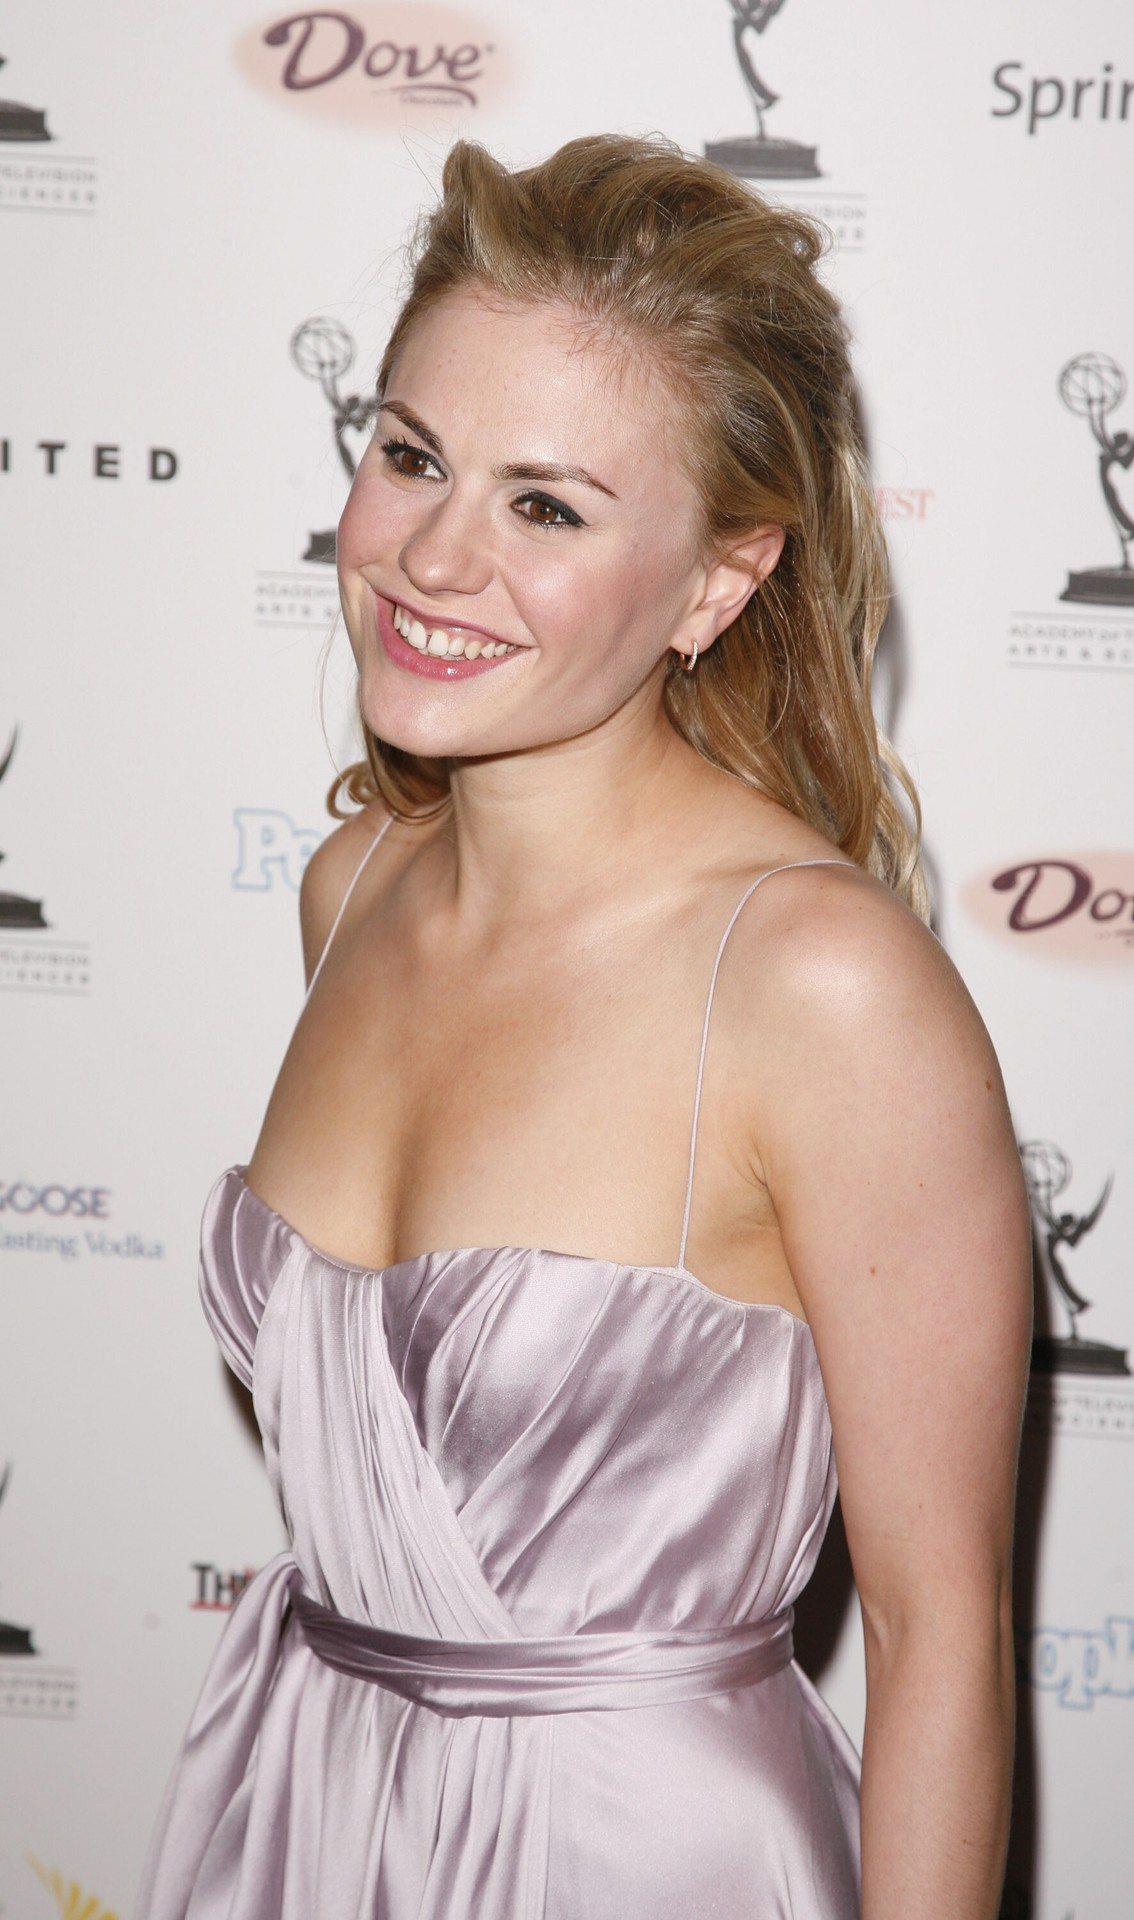 Anna Paquin images Anna HD wallpaper and background photos (560203) Anna Paquin